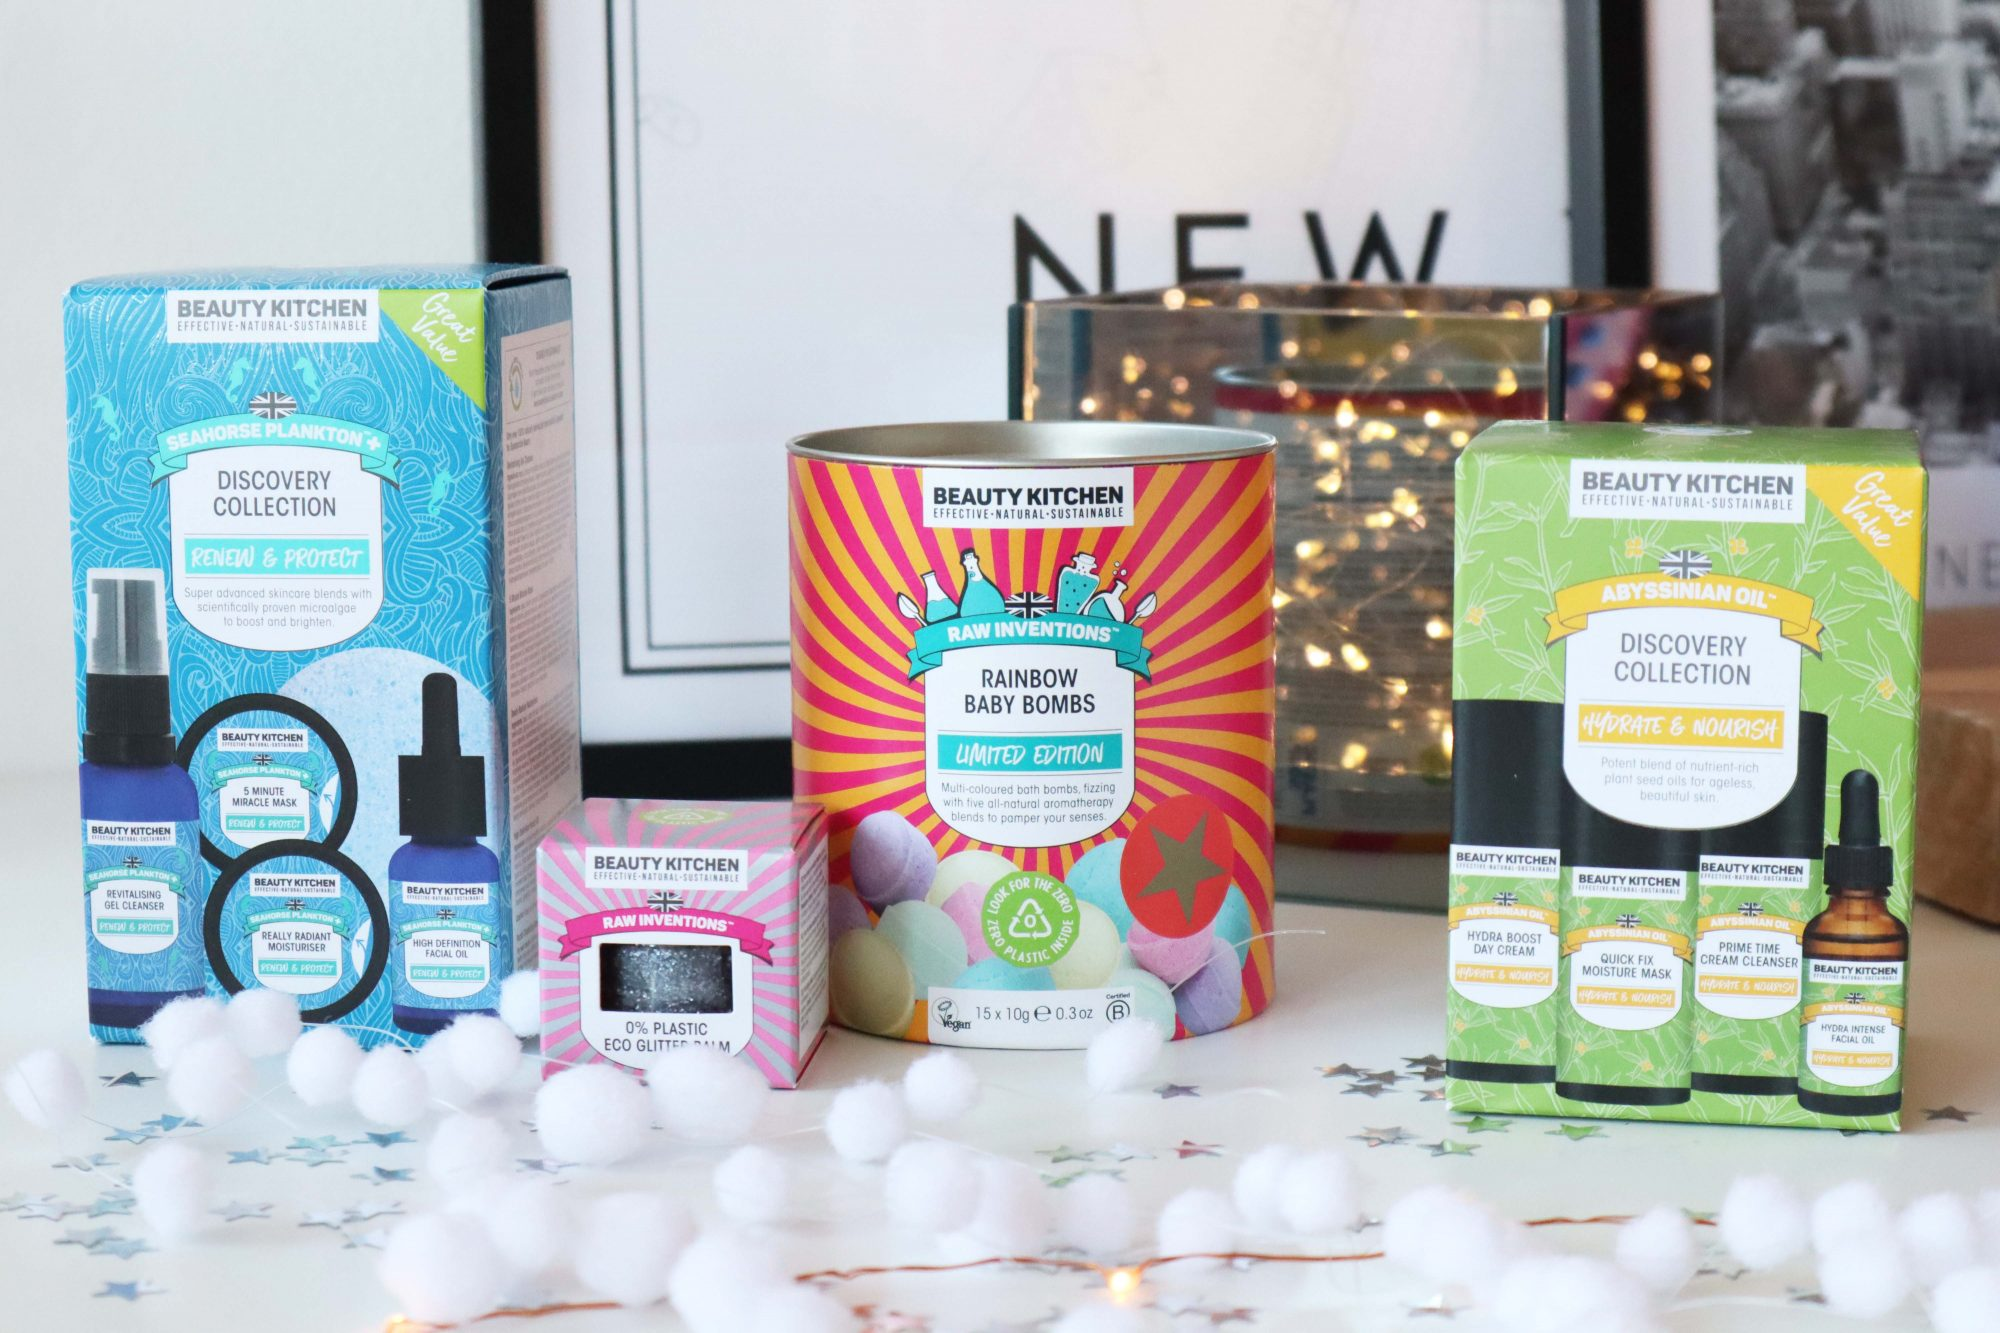 Beauty Kitchen Giftsets